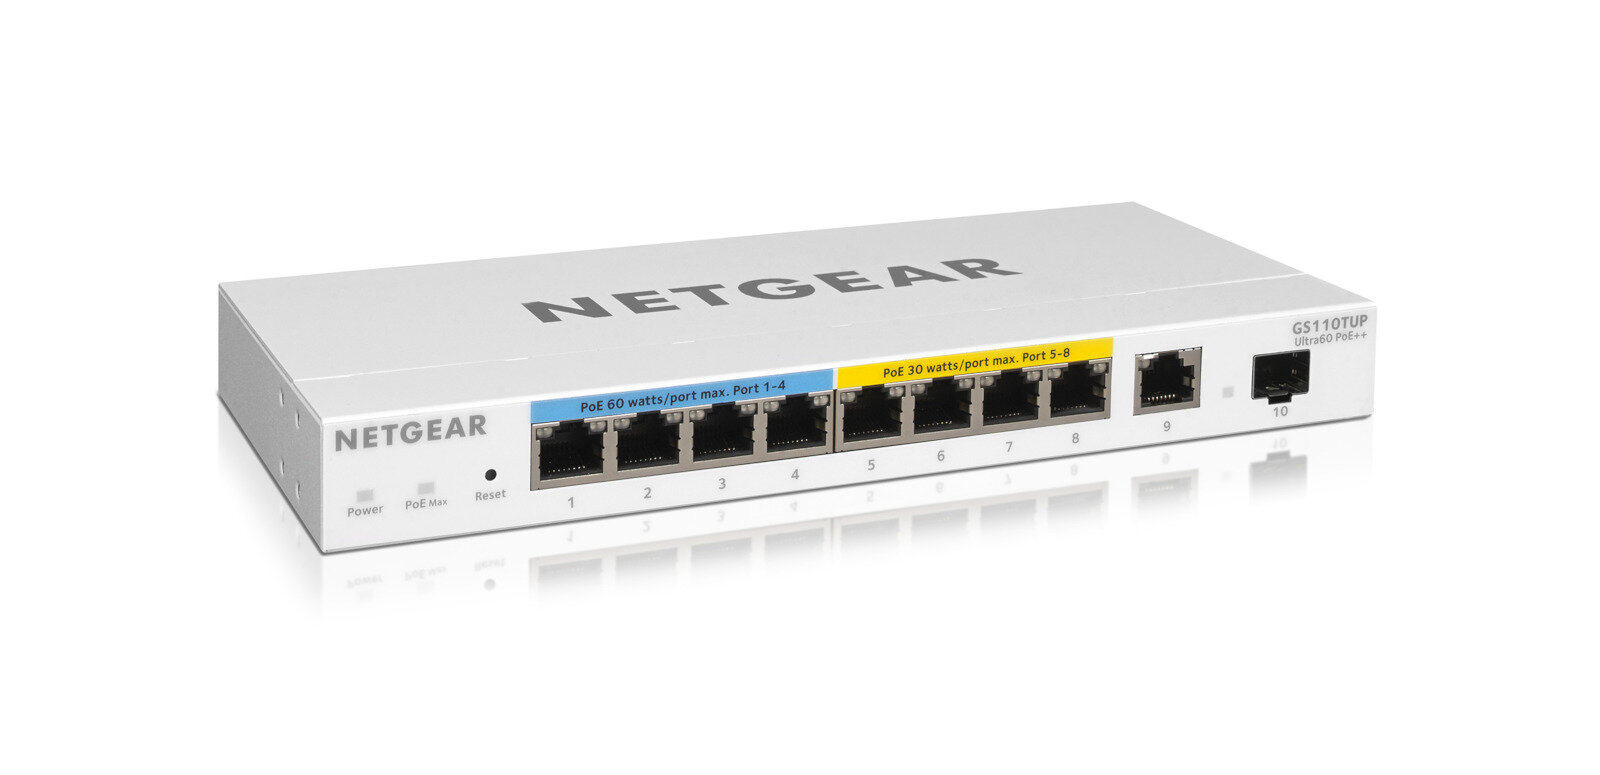 Netgear passe à son tour au PoE++ (jusqu'à 60 watts) « sans interruption »